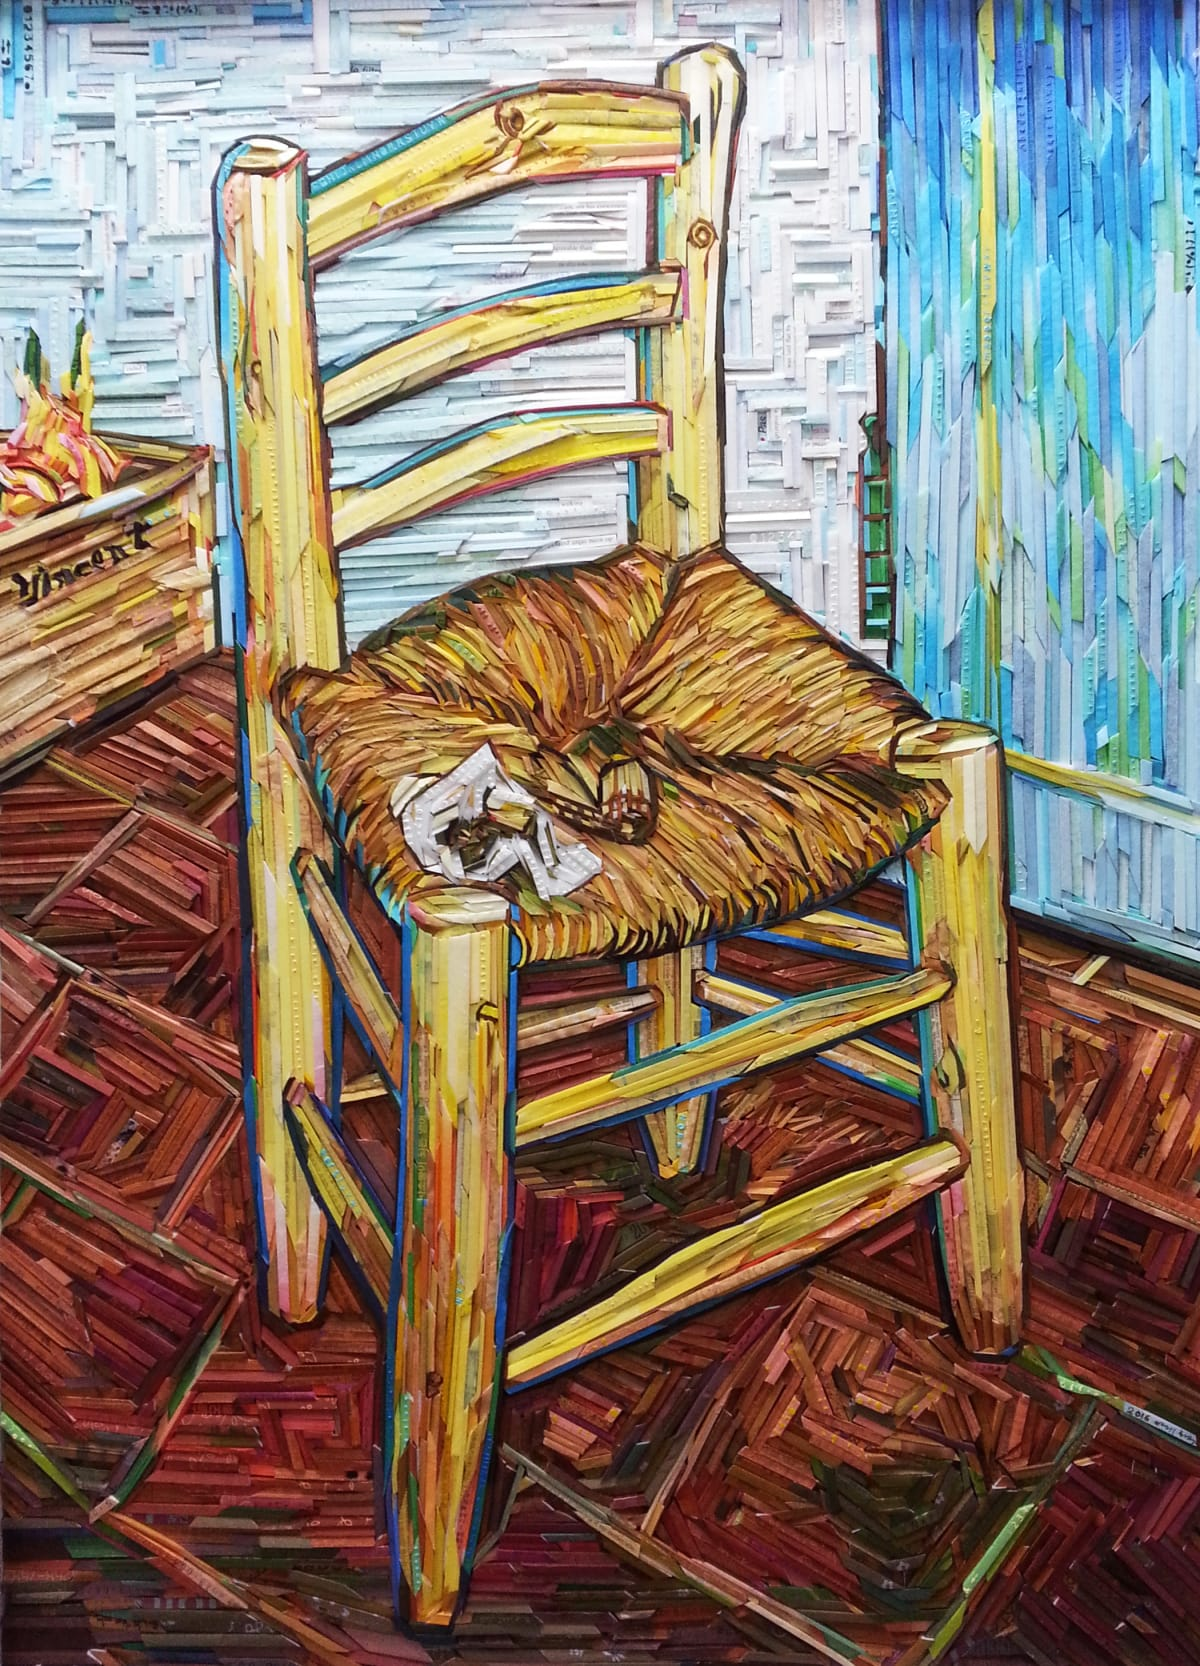 Kyu-Hak Lee, Monument- Gogh's Chair #5, 2017